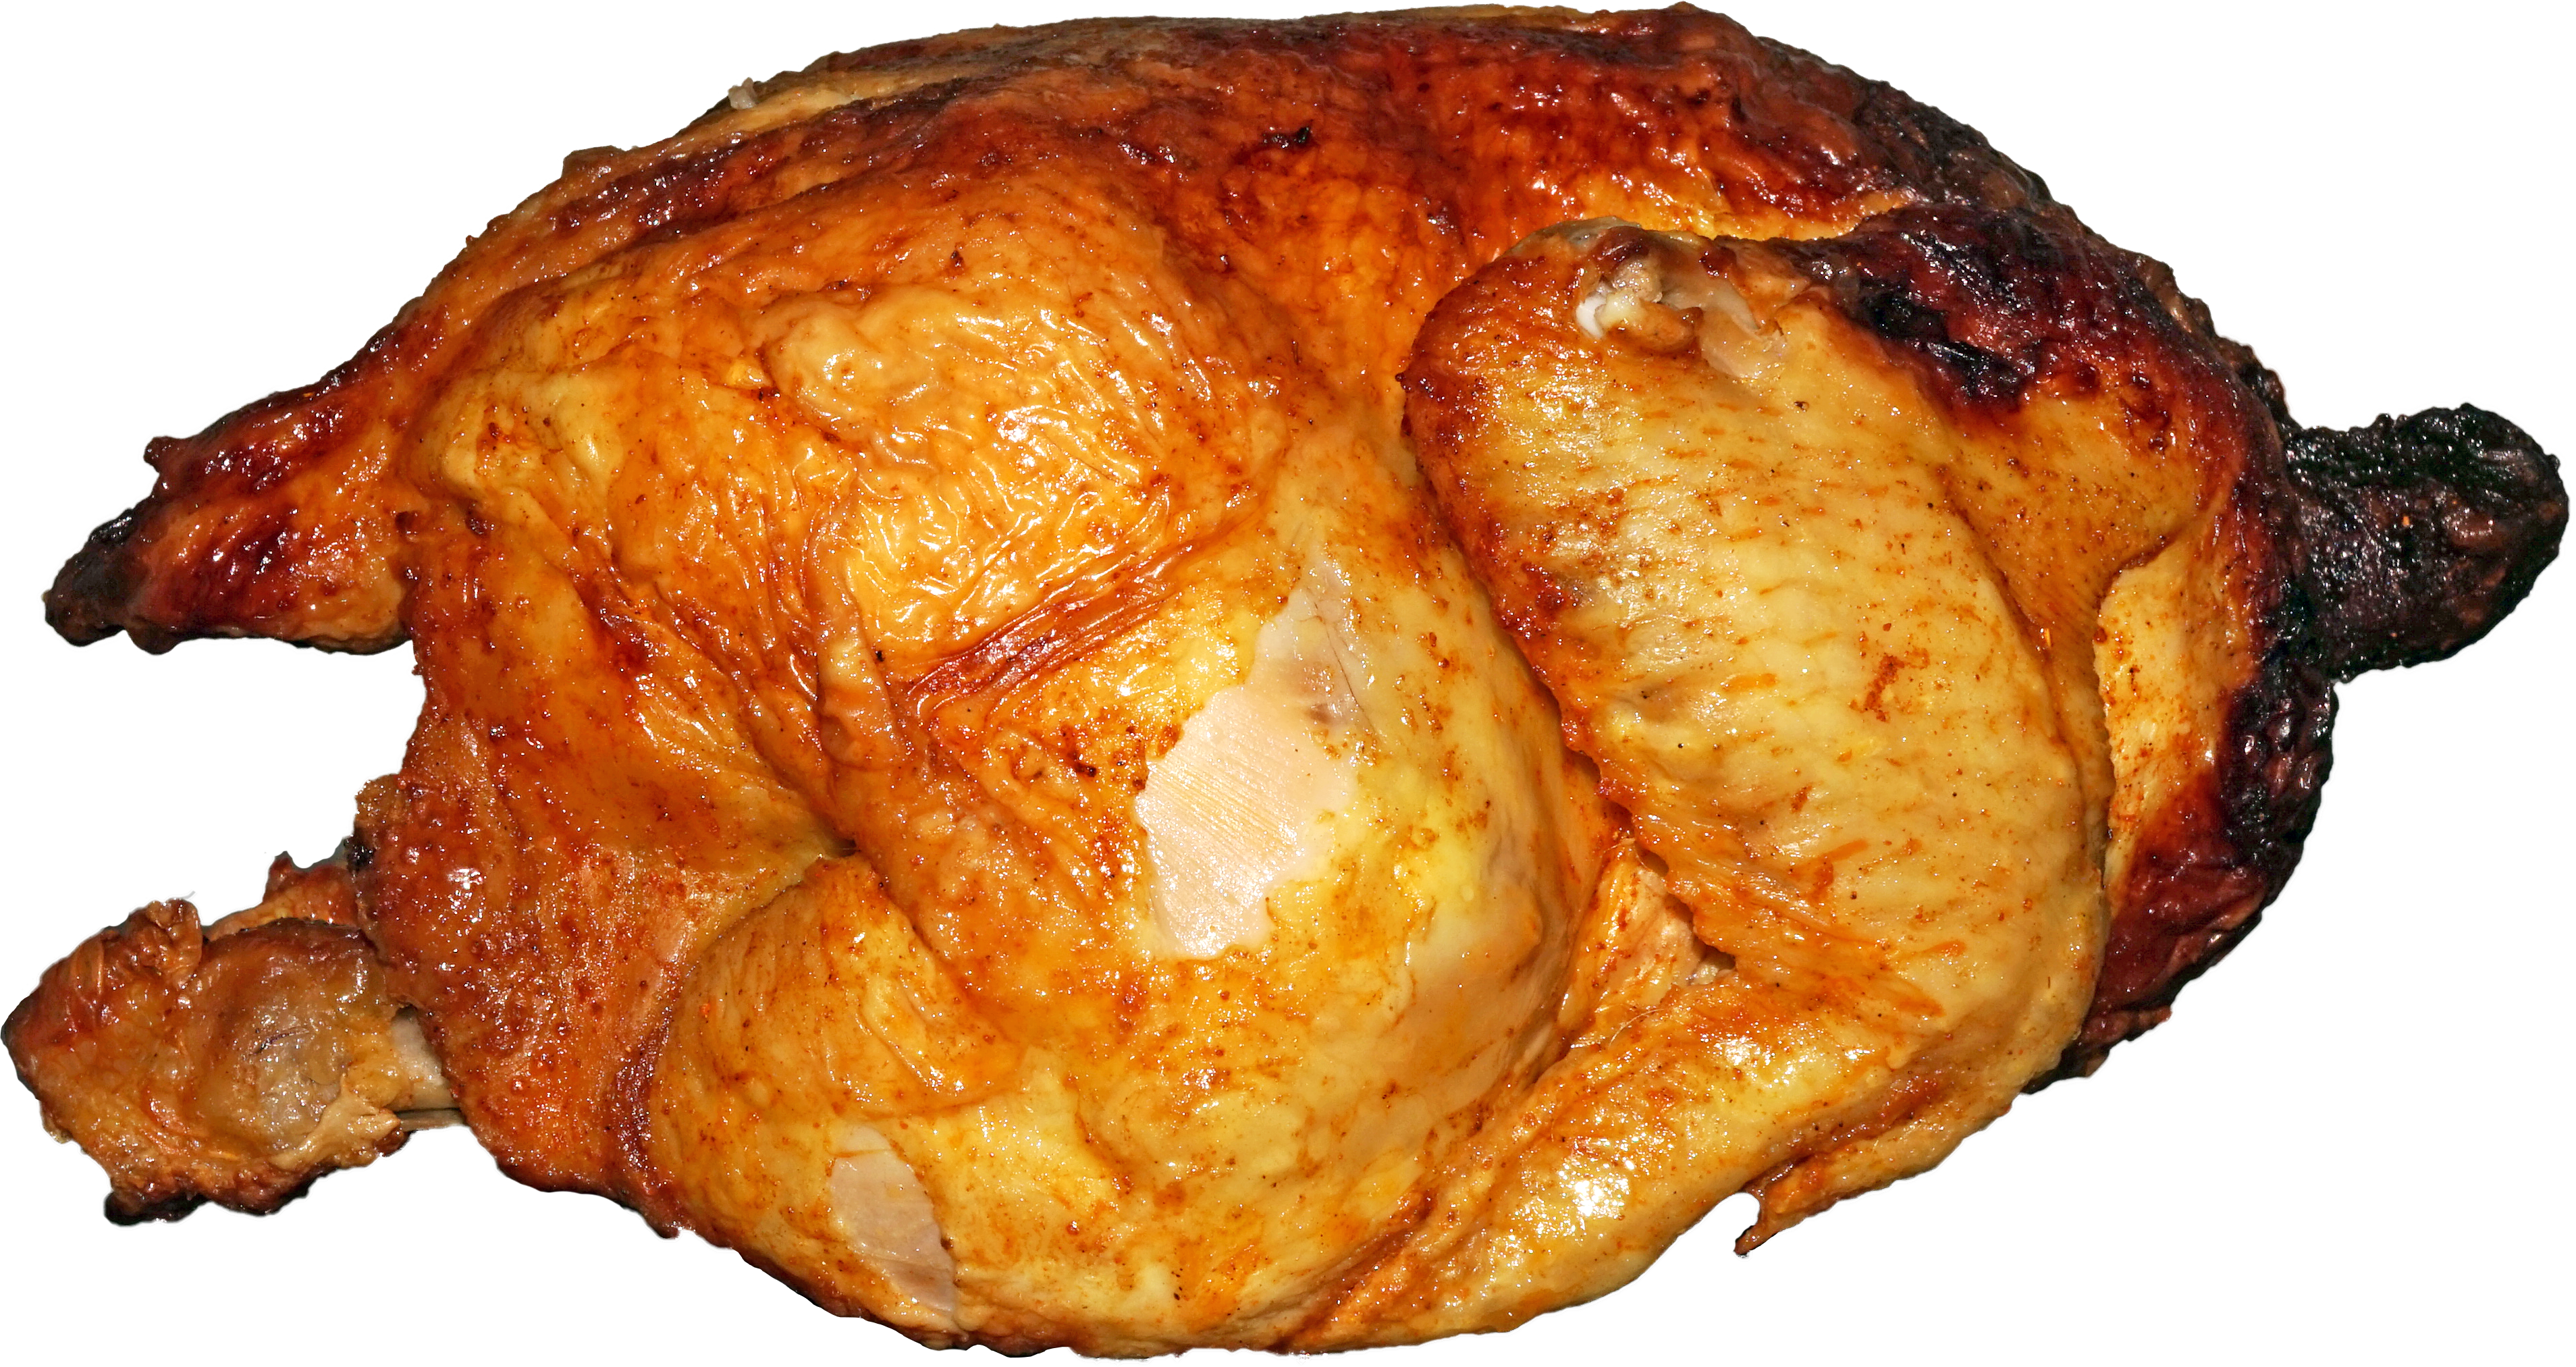 File:Chicken.png.